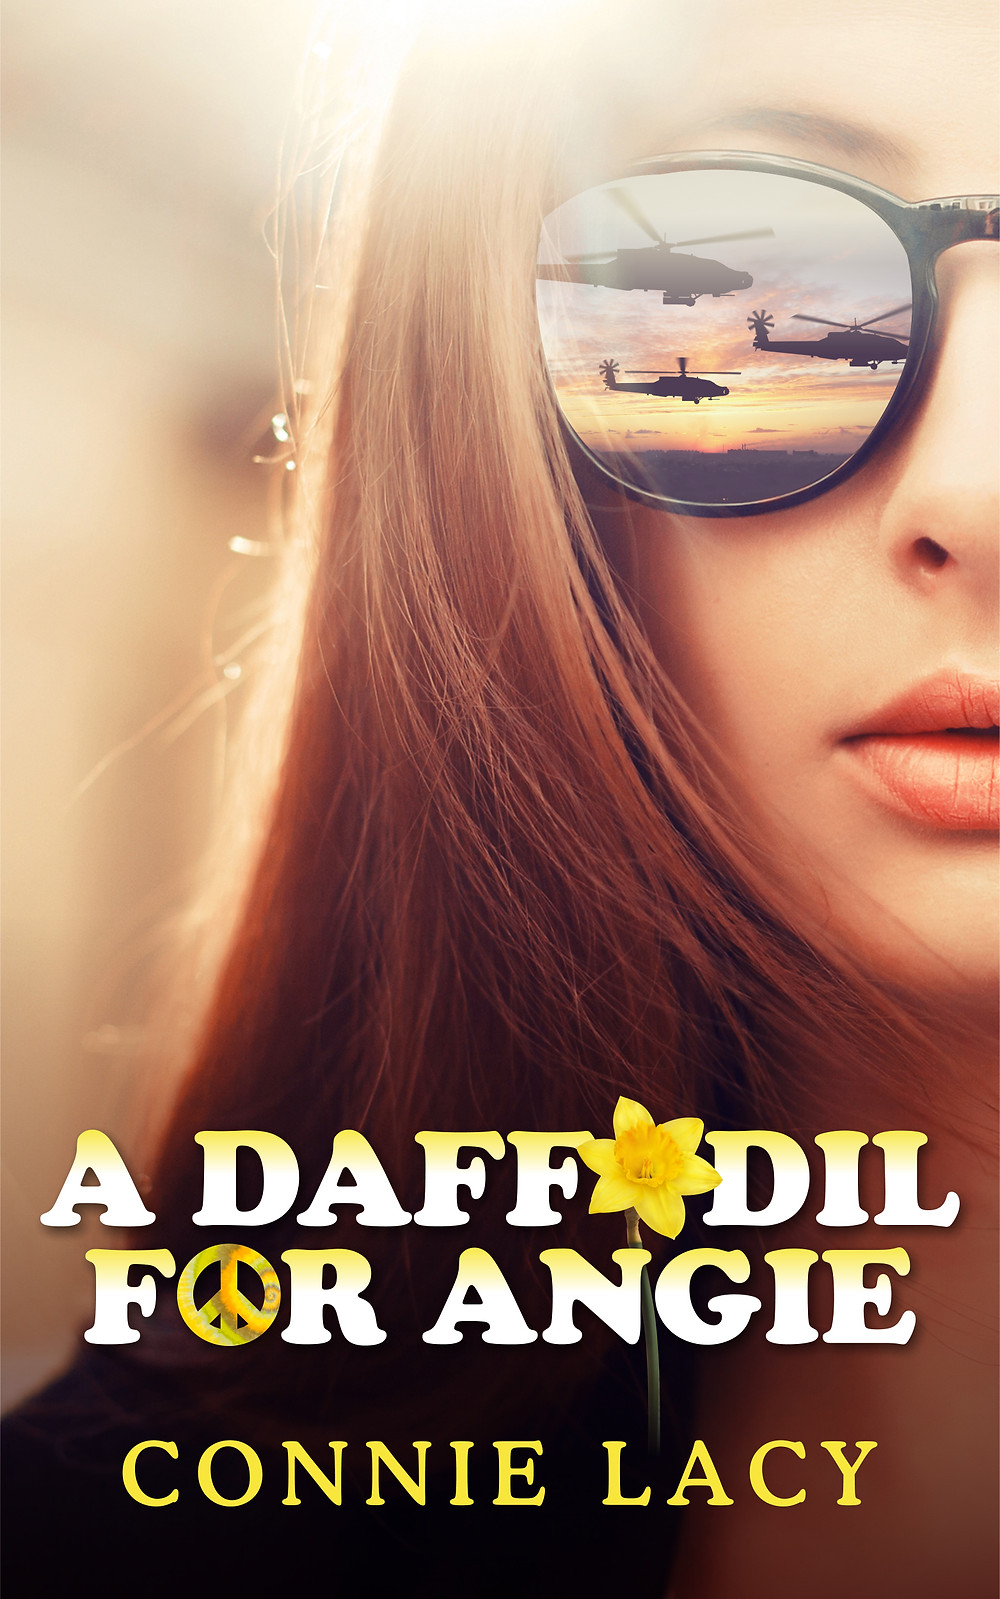 A Daffodil for Angie by Connie Lacy, historical fiction, coming of age